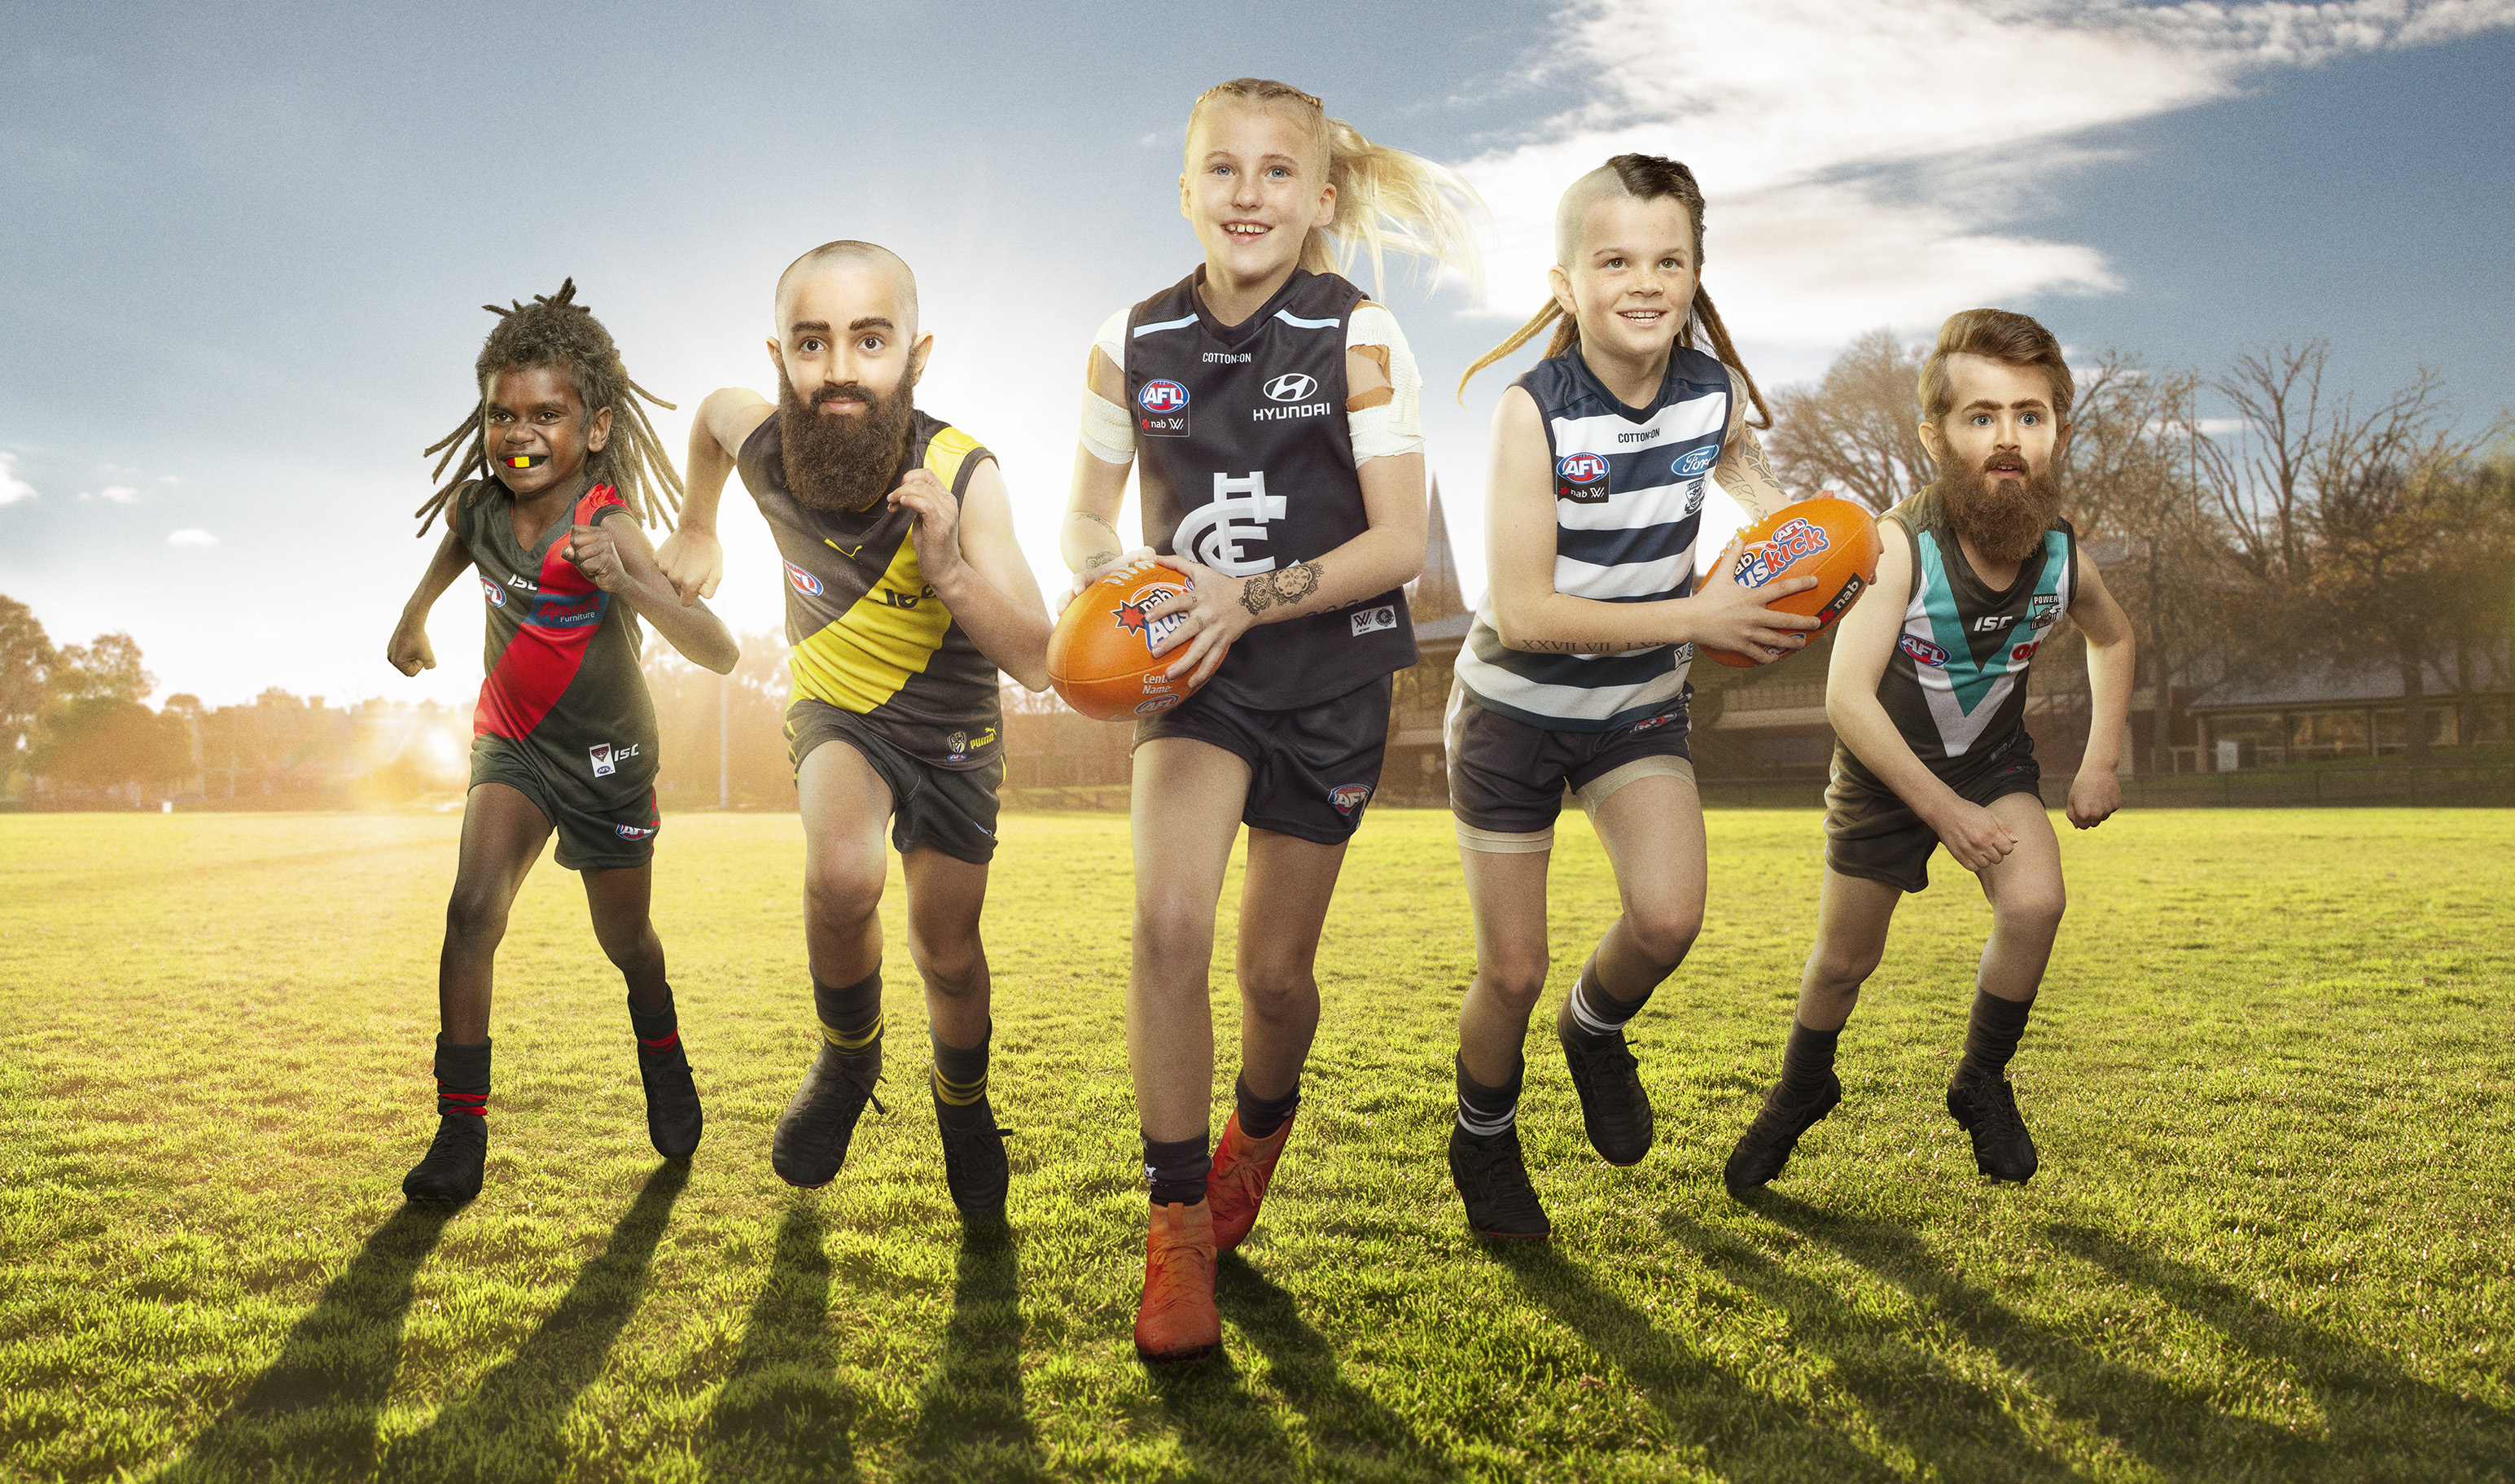 NAB launches 2019 line-up of AFL Mini Legends in latest campaign via Clemenger BBDO, Melbourne